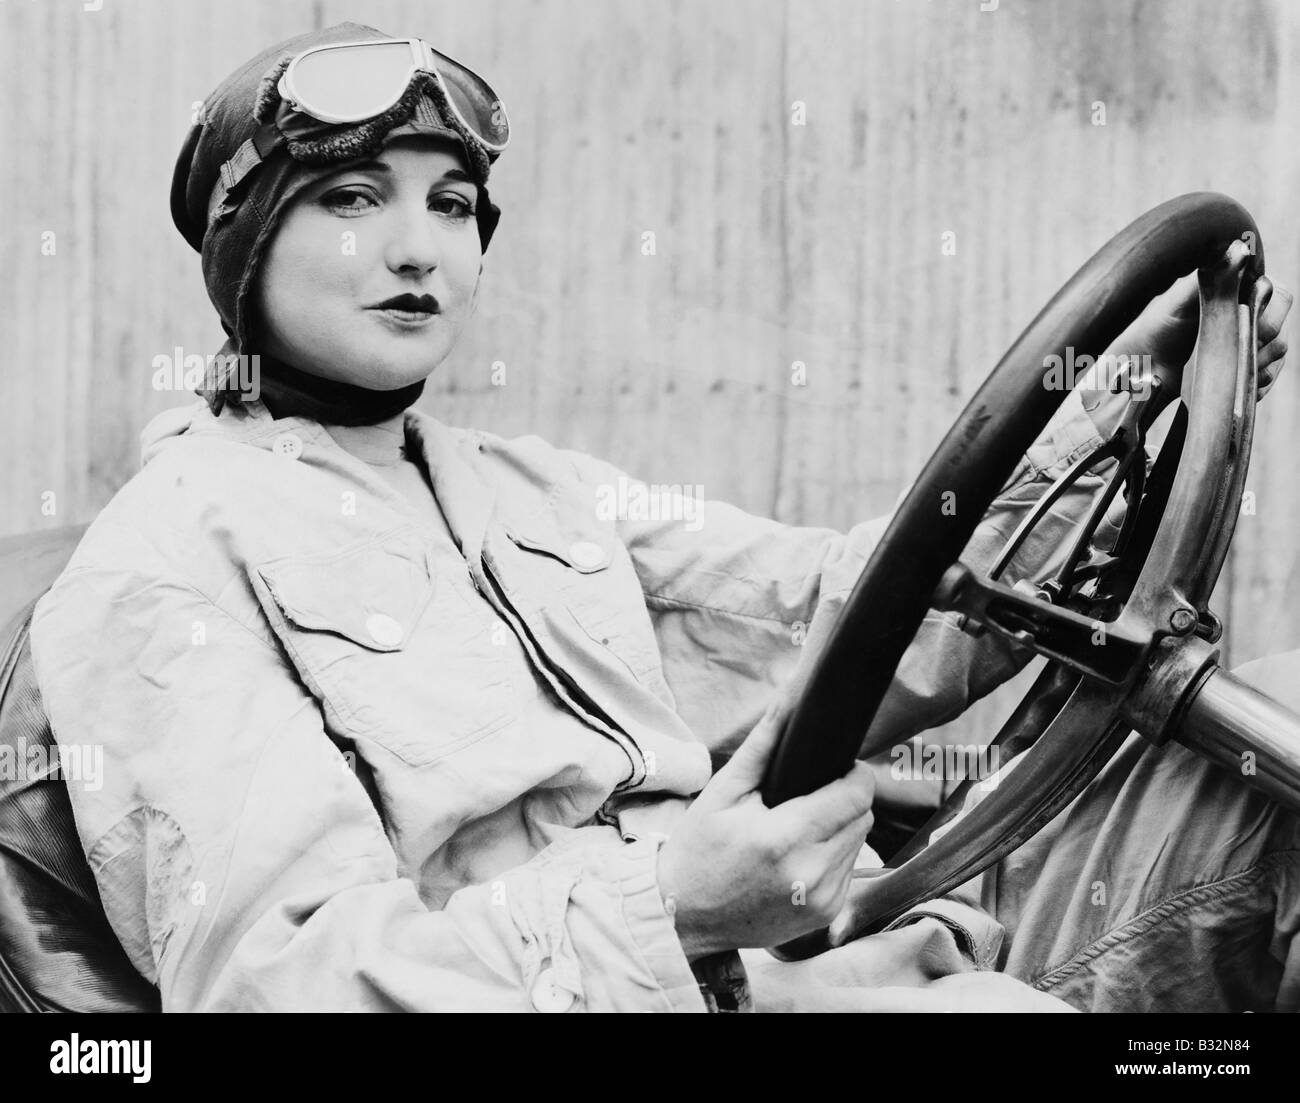 Female Race Car Driver Vintage High Resolution Stock Photography And Images Alamy